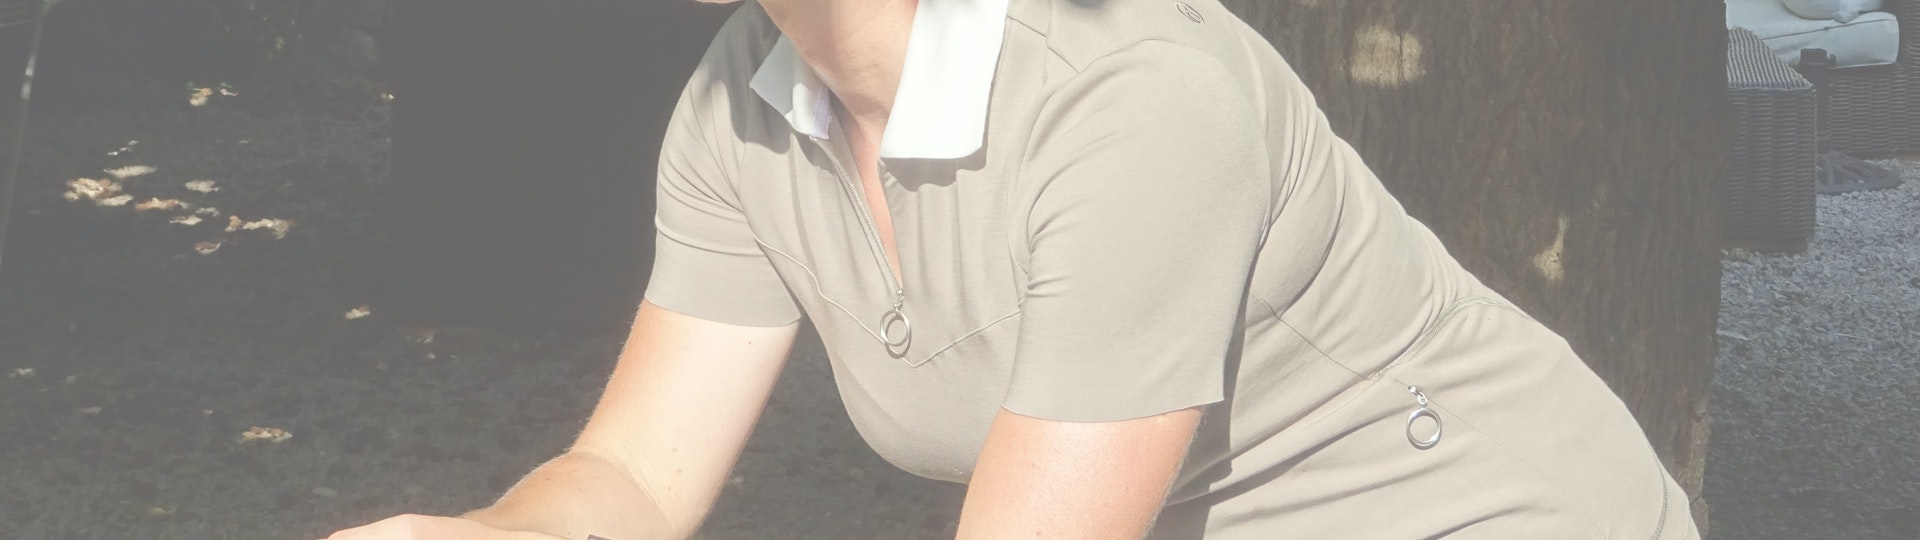 Reviewed Mien S Contrast Polo And Cycle Stretc